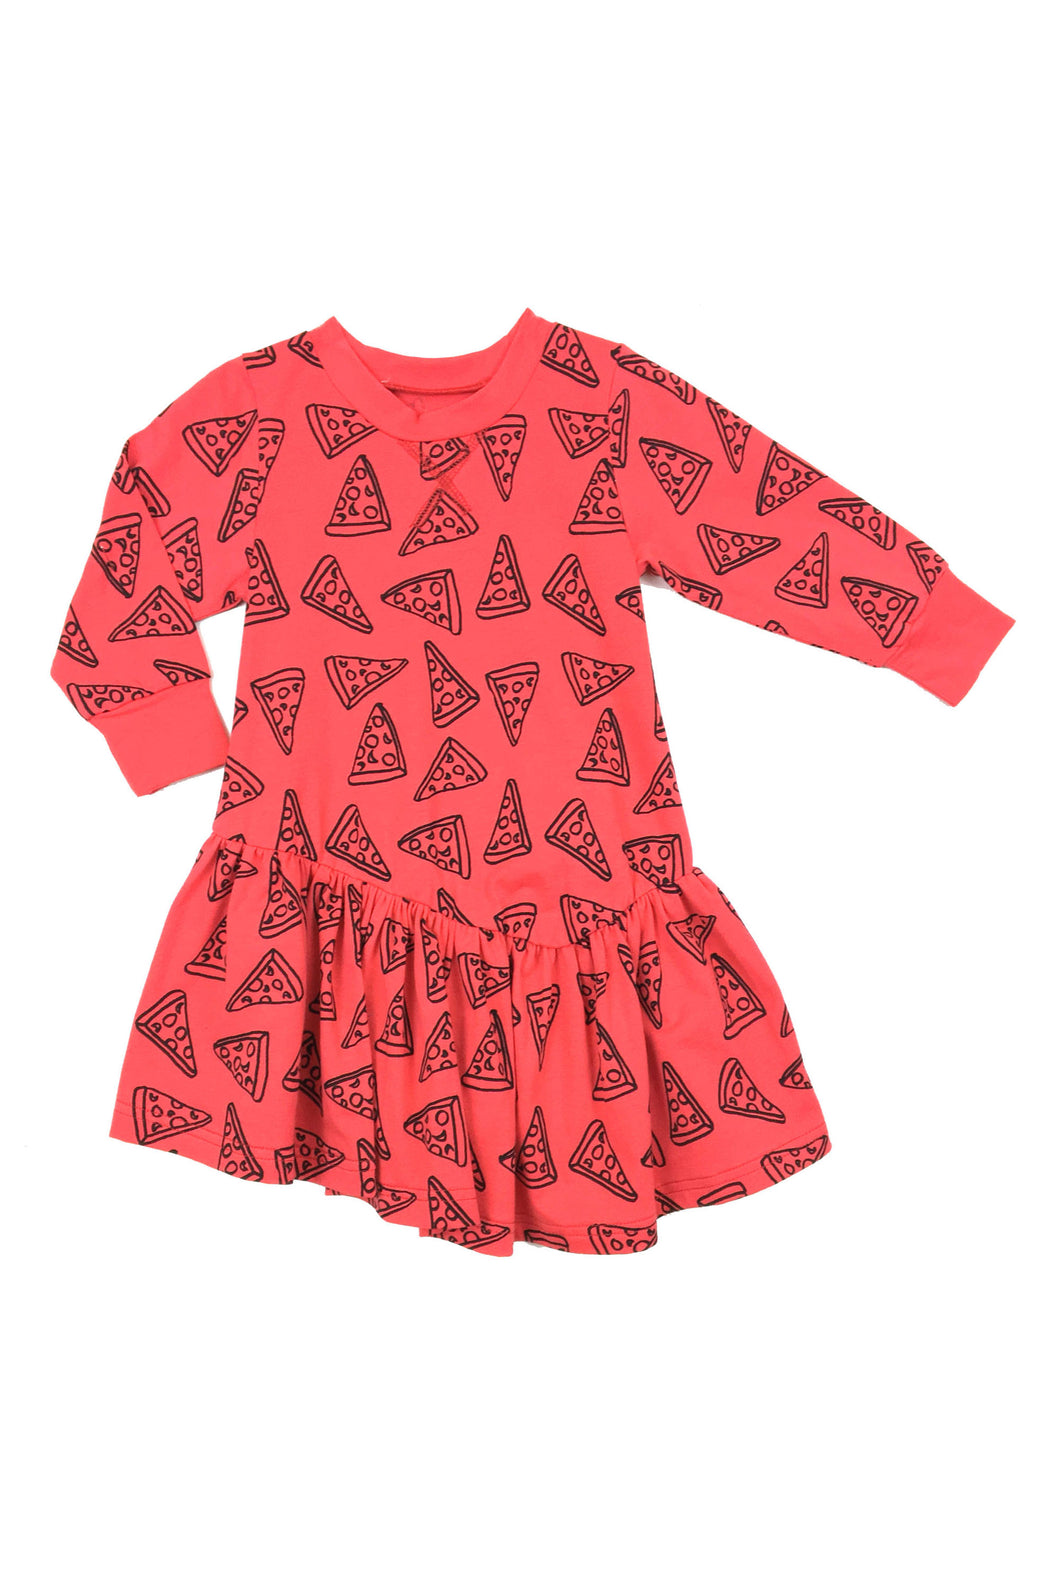 Avery pizza dress